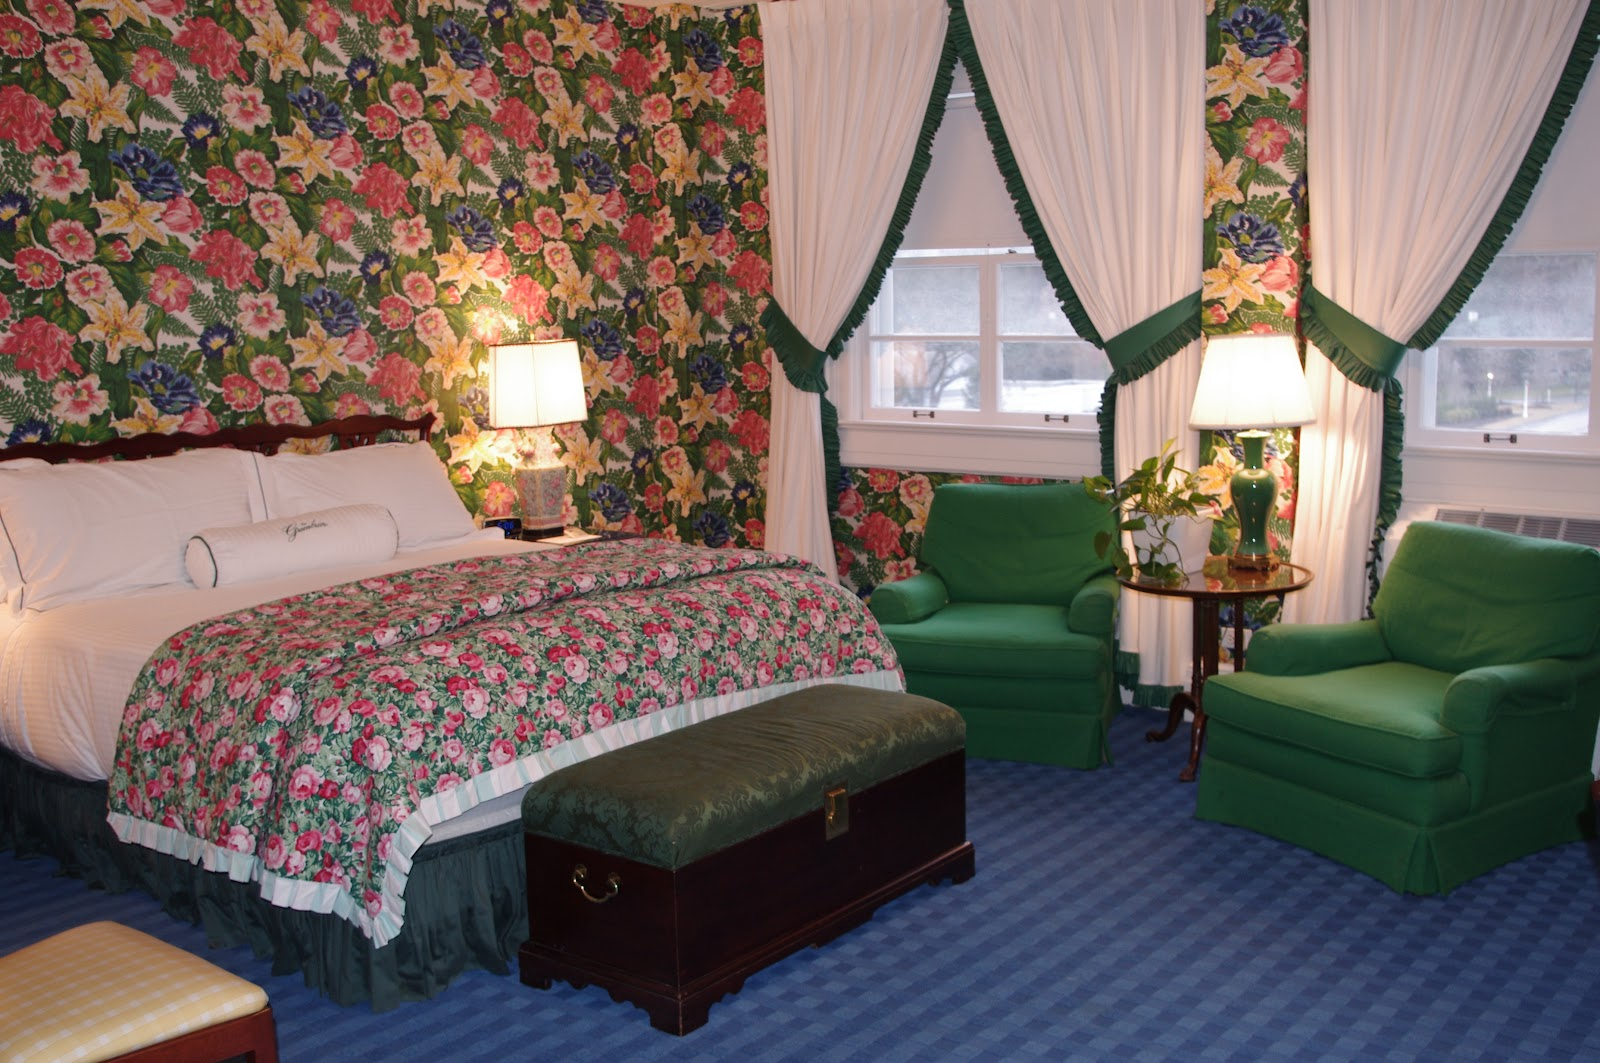 Room in the Main Hotel Decorated in Typical Dorothy Draper Style 1600x1063